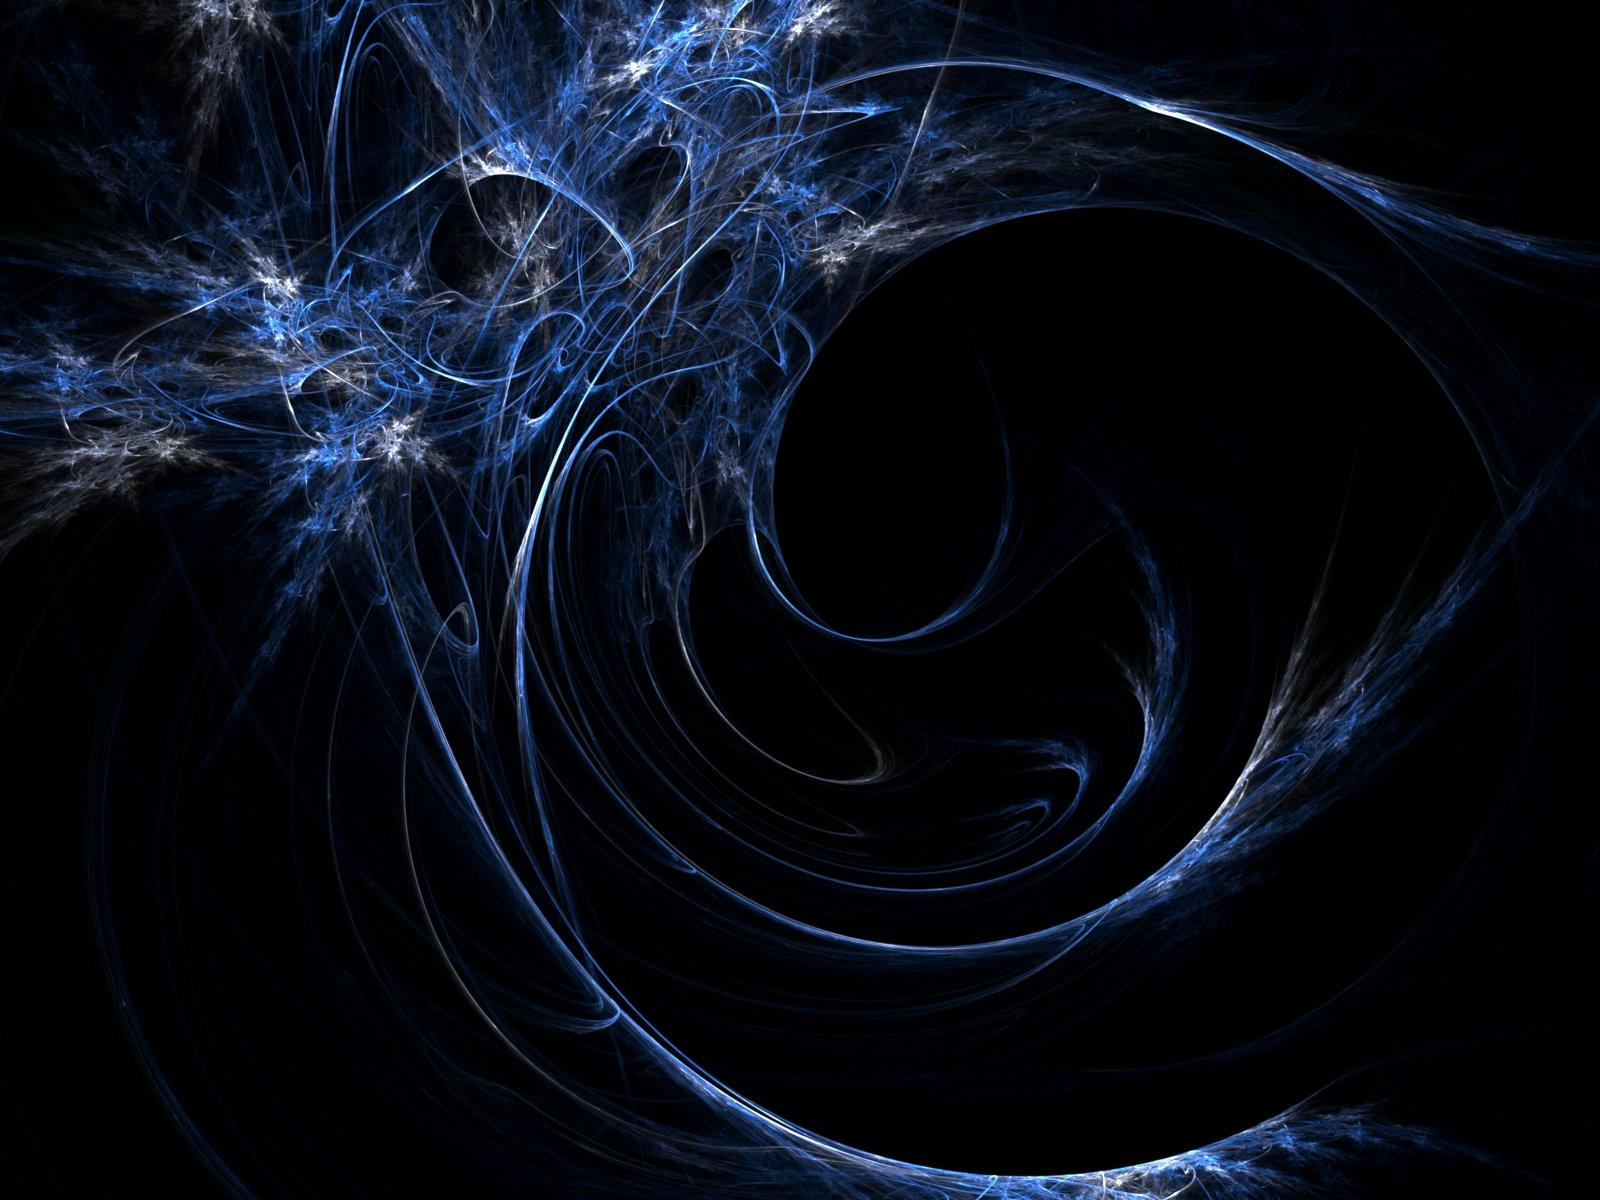 Wallpapers - Best Fractal Pack (29-10-2009)